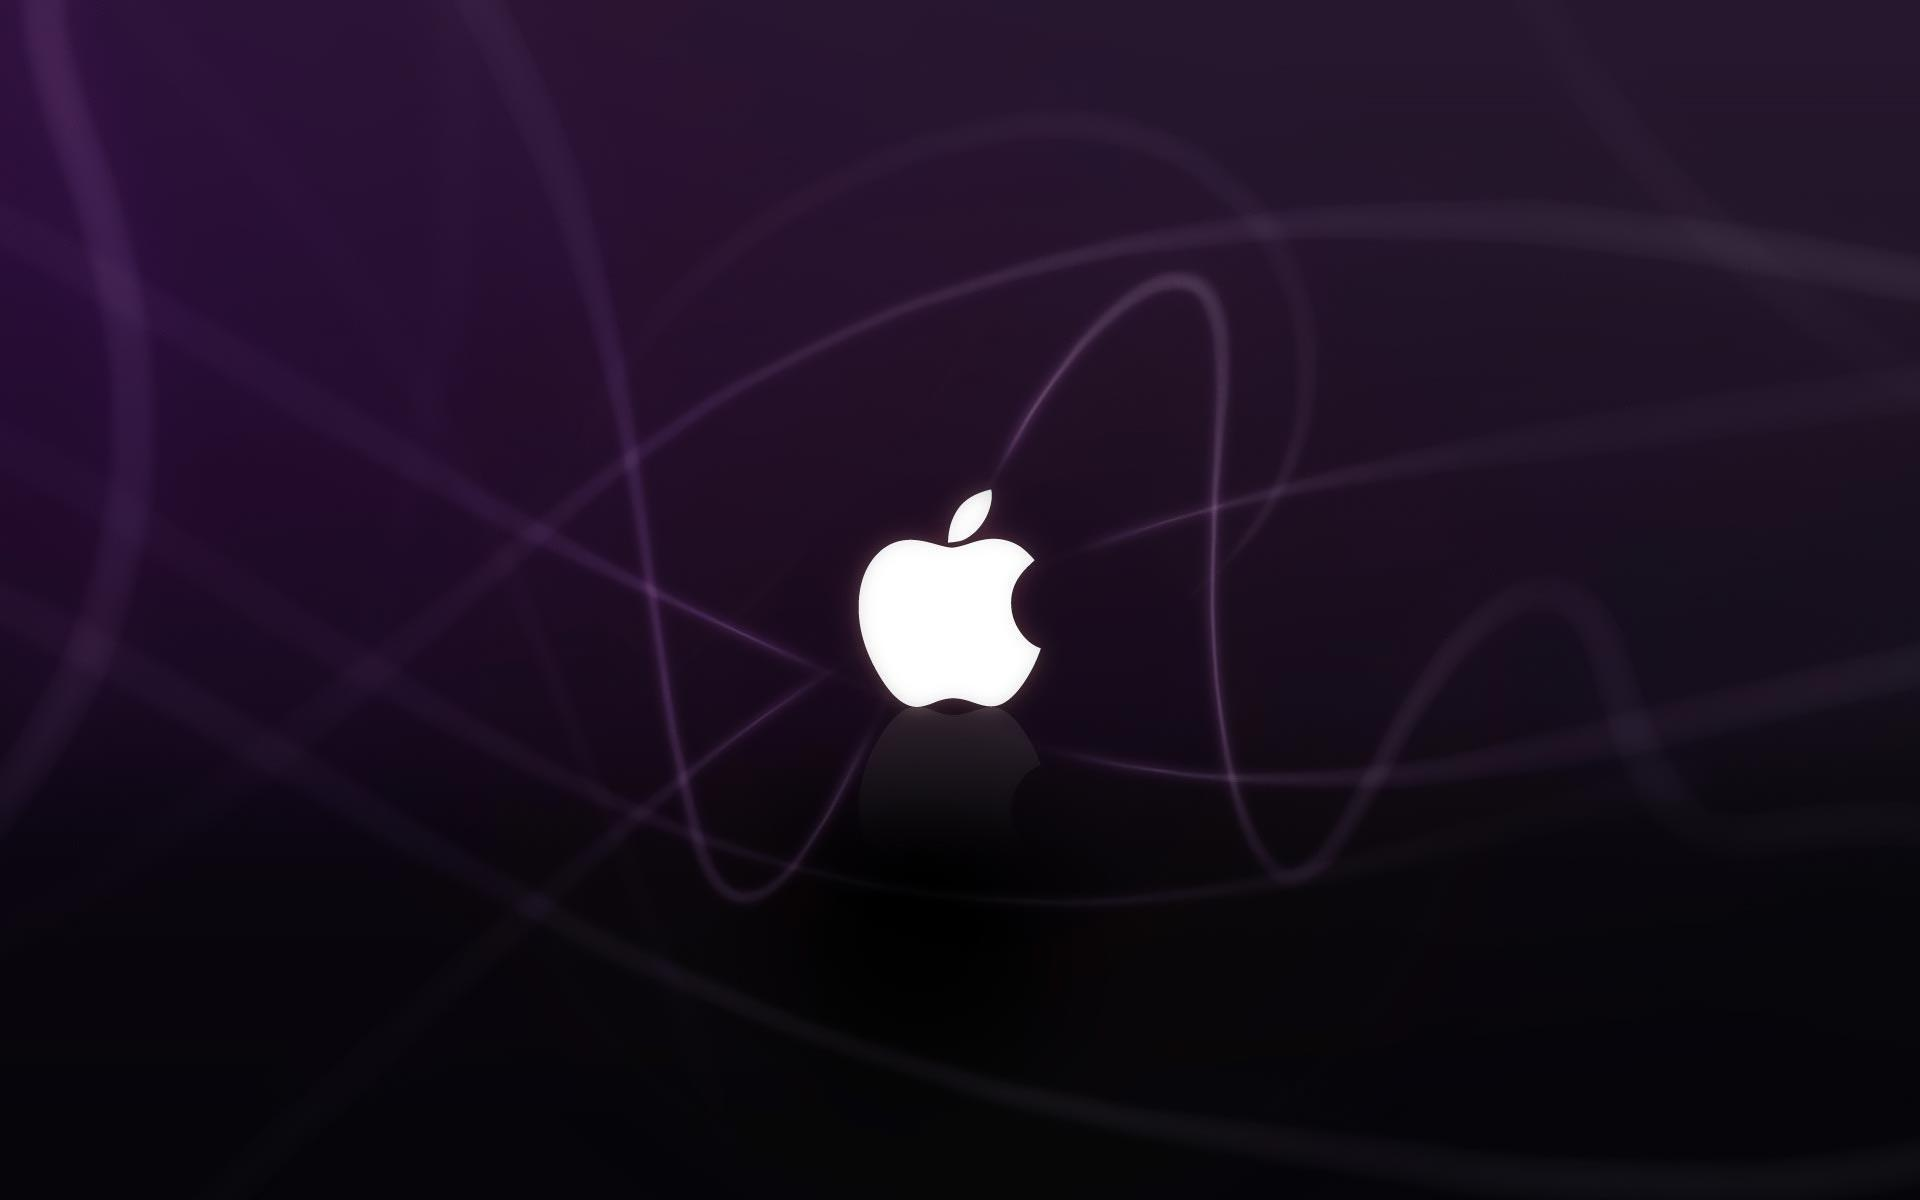 Mac Os X Desktop Wallpapers Hd